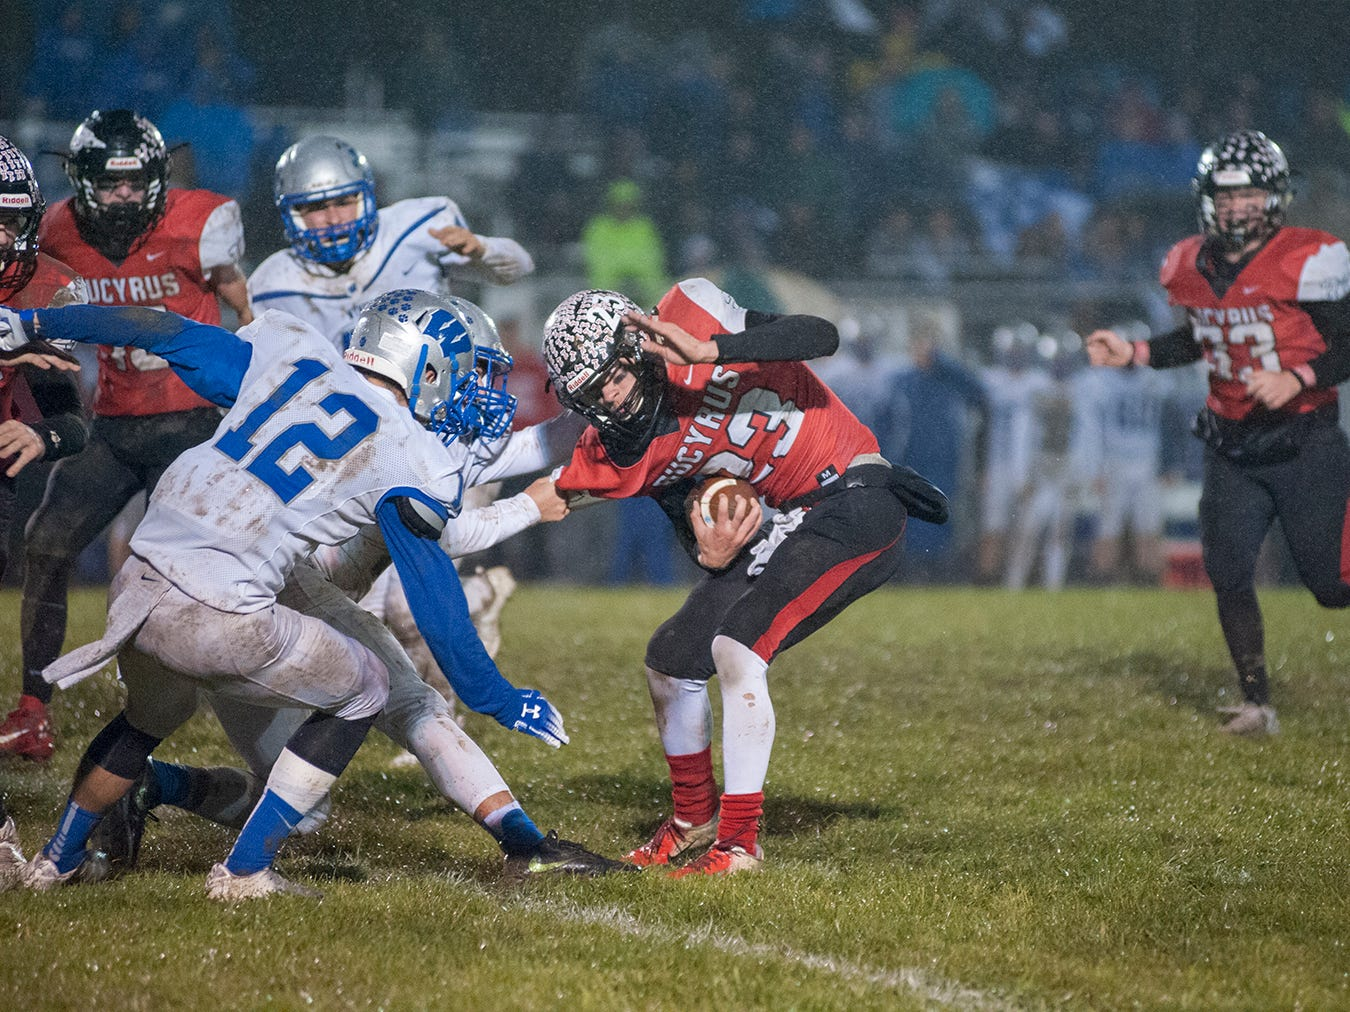 Bucyrus' Harley Robinson tries to avoid a tackle from Wynford's  Danny Bishop.